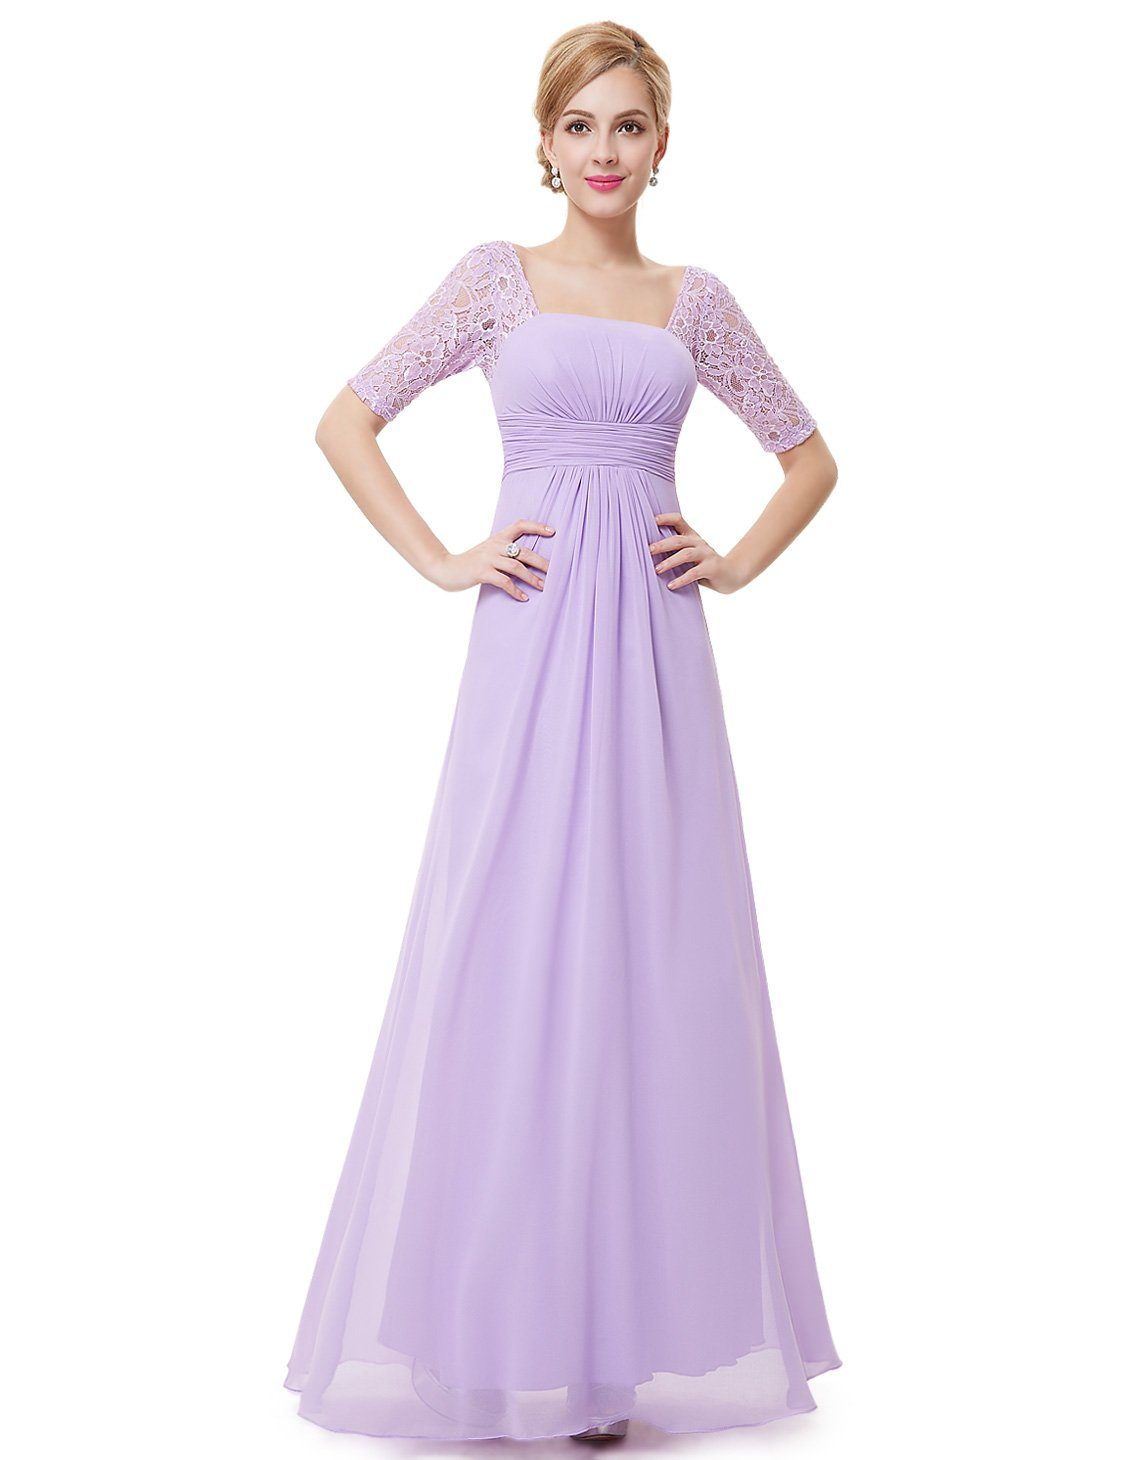 Plus Size Ball Gowns: Amazon.co.uk